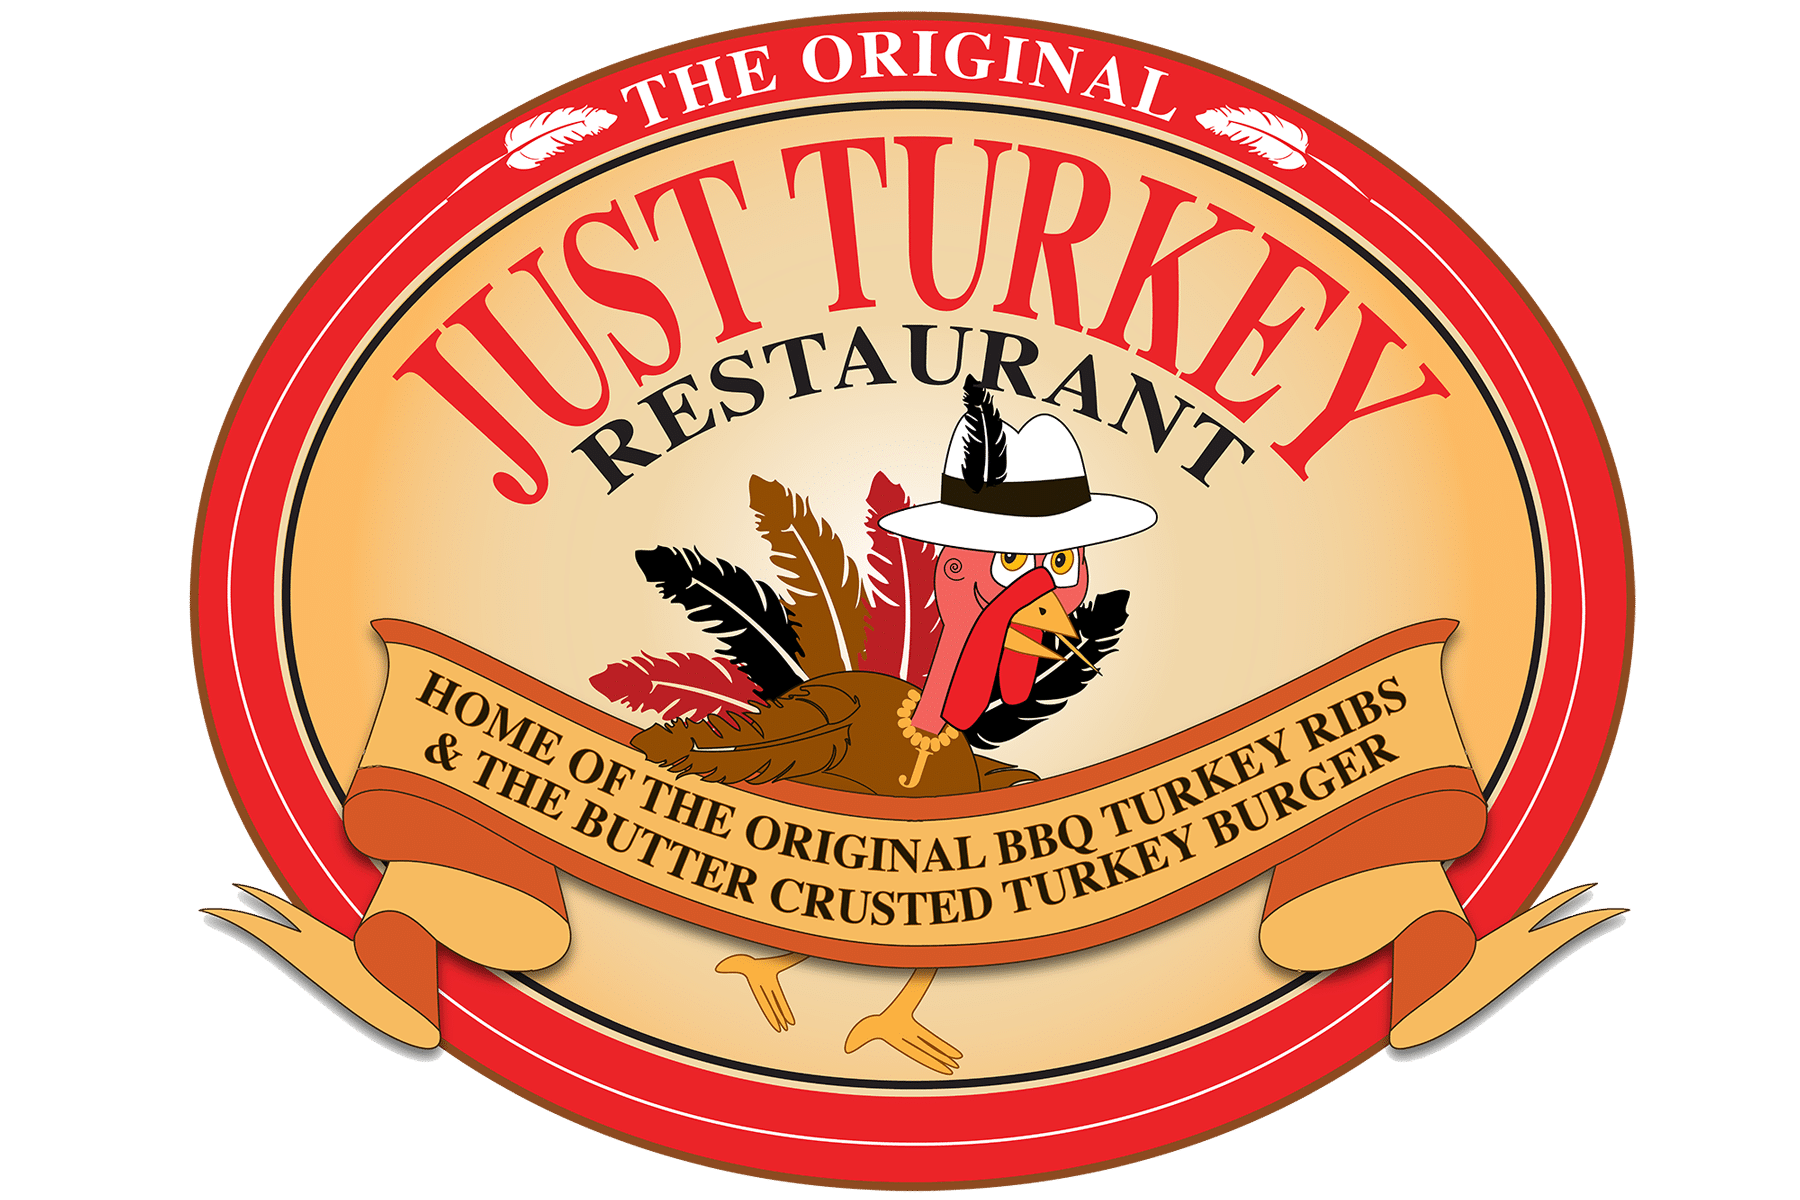 Just Turkey Restaurant Logo